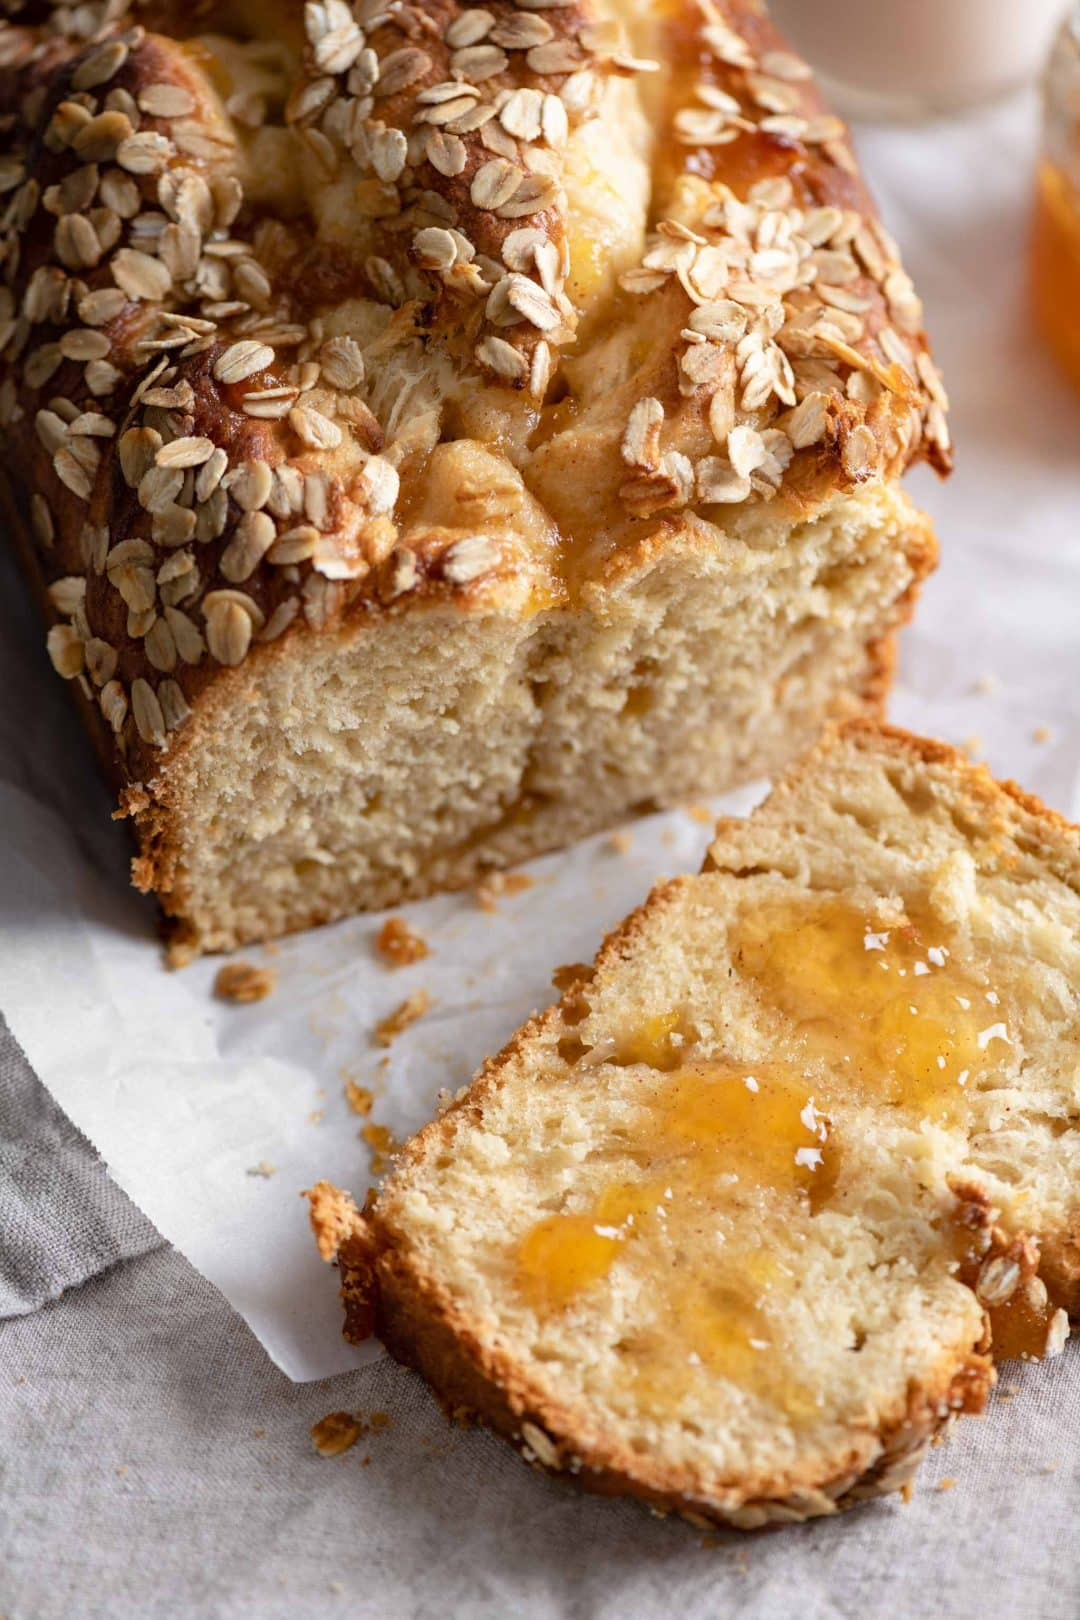 Brioche Bread Loaf sliced with peach preserves